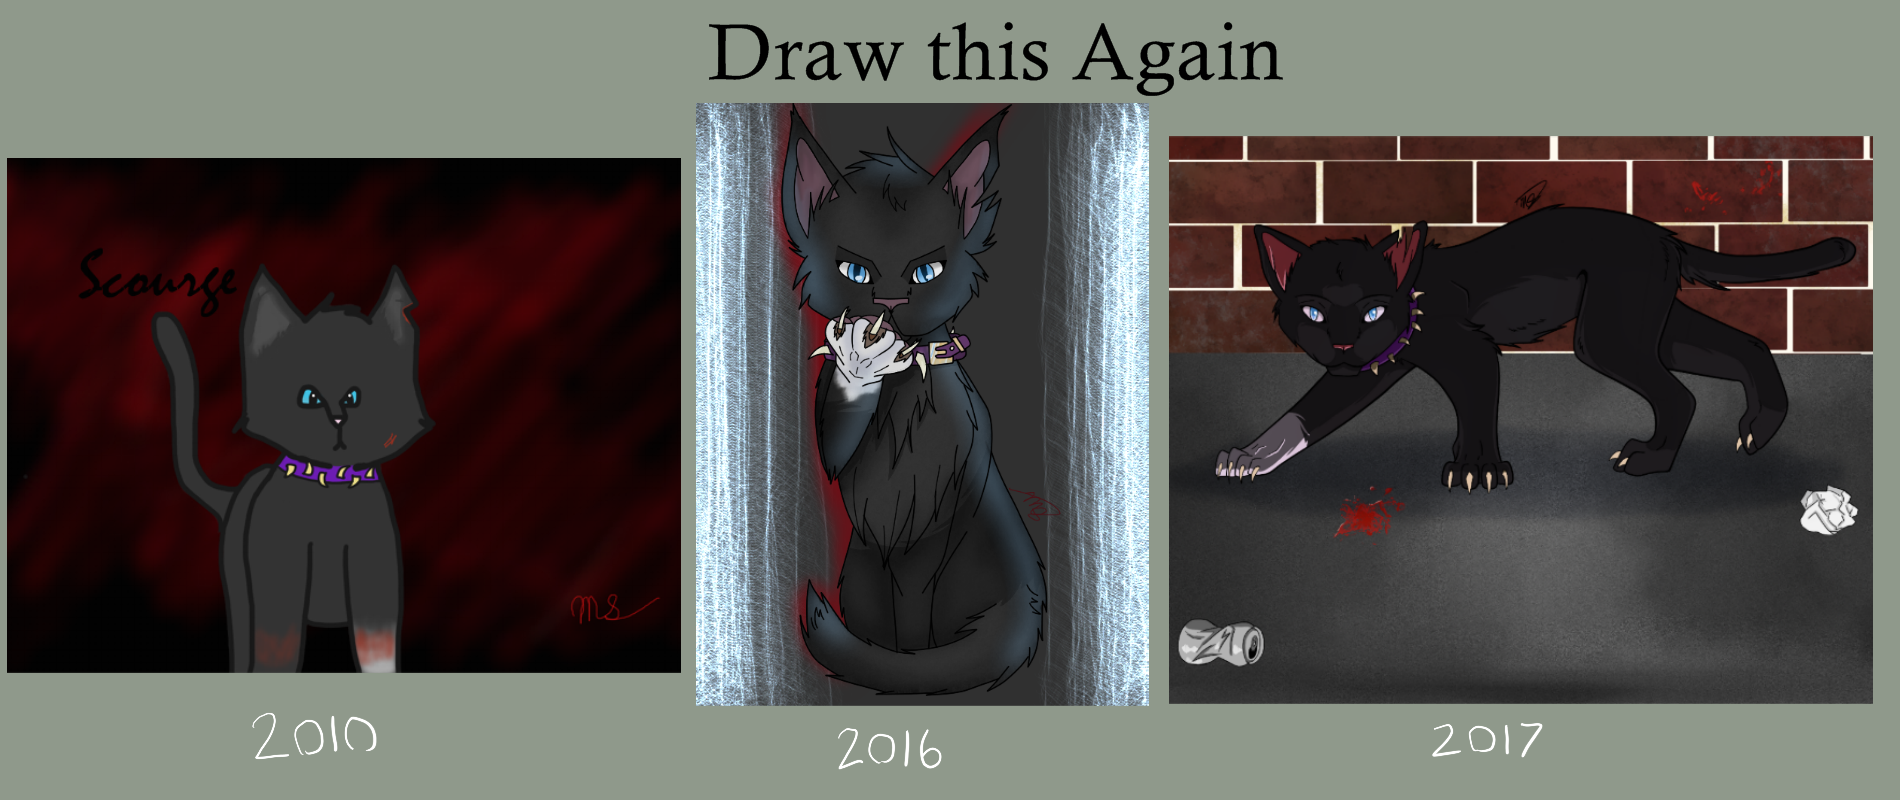 Draw this Again by drawingwolf17